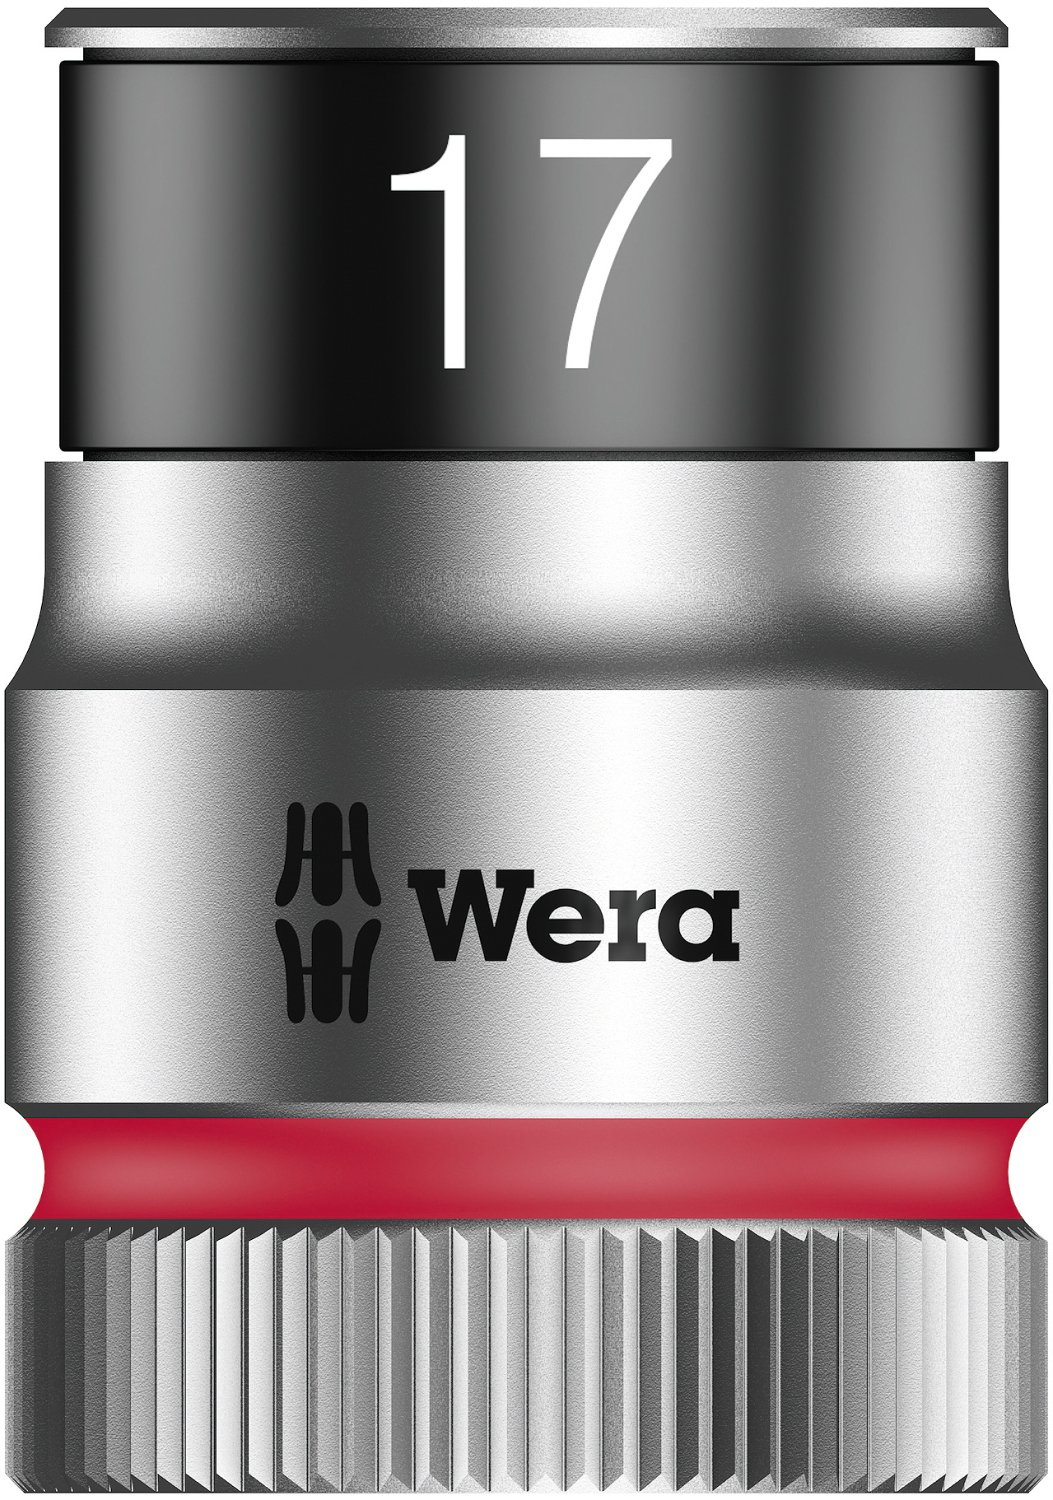 Wera 05003737001 8790 Hmc Hf 17mm Zyklop Socket with Hexagon Drive by Wera (Image #1)